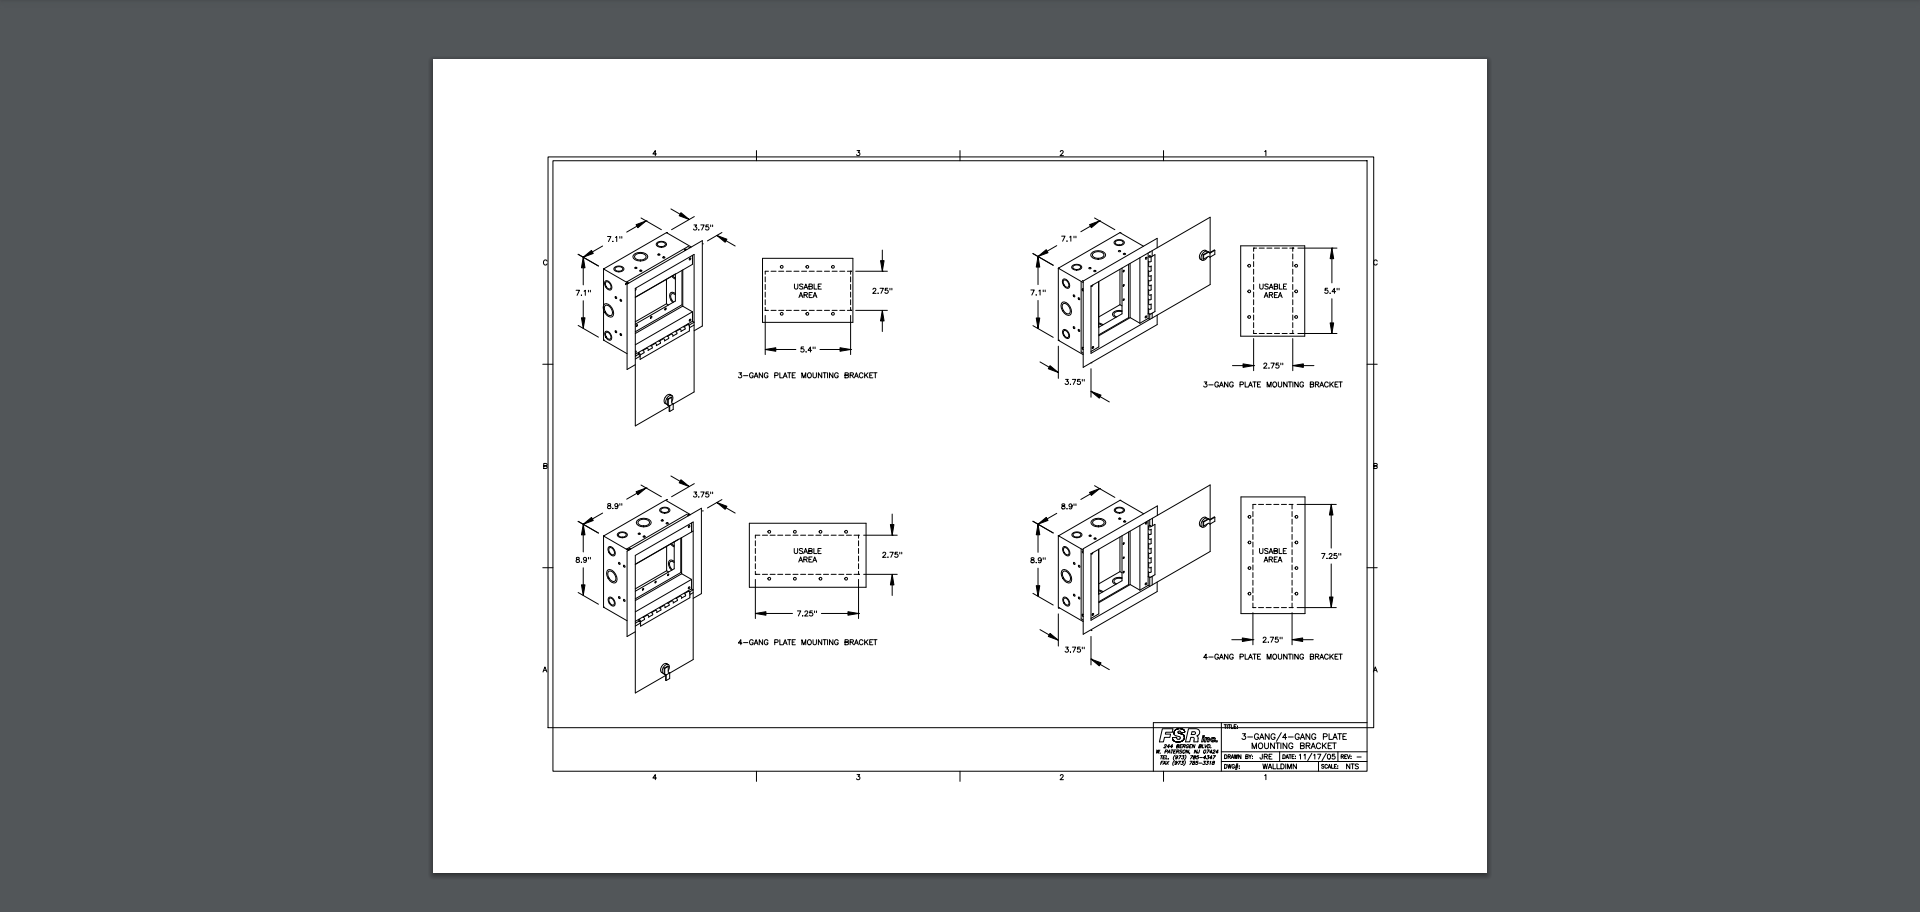 screencapture konsolutedemo sharepoint sites ContentCentre Sample CAD Drawings 16141350 pdf 2021 01 12 15 11 52